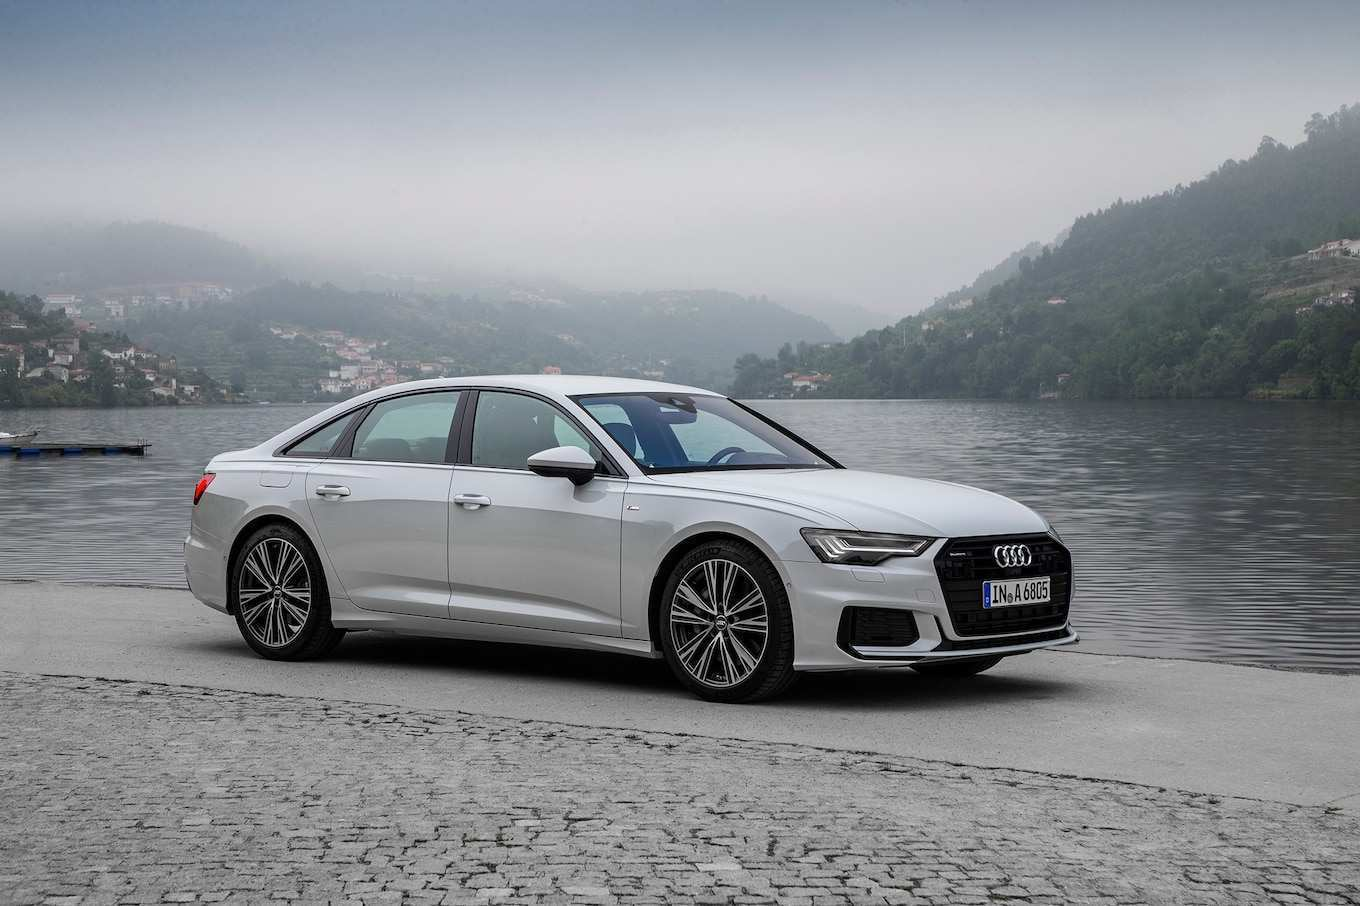 14 New Audi A6 2019 Price and Review by Audi A6 2019